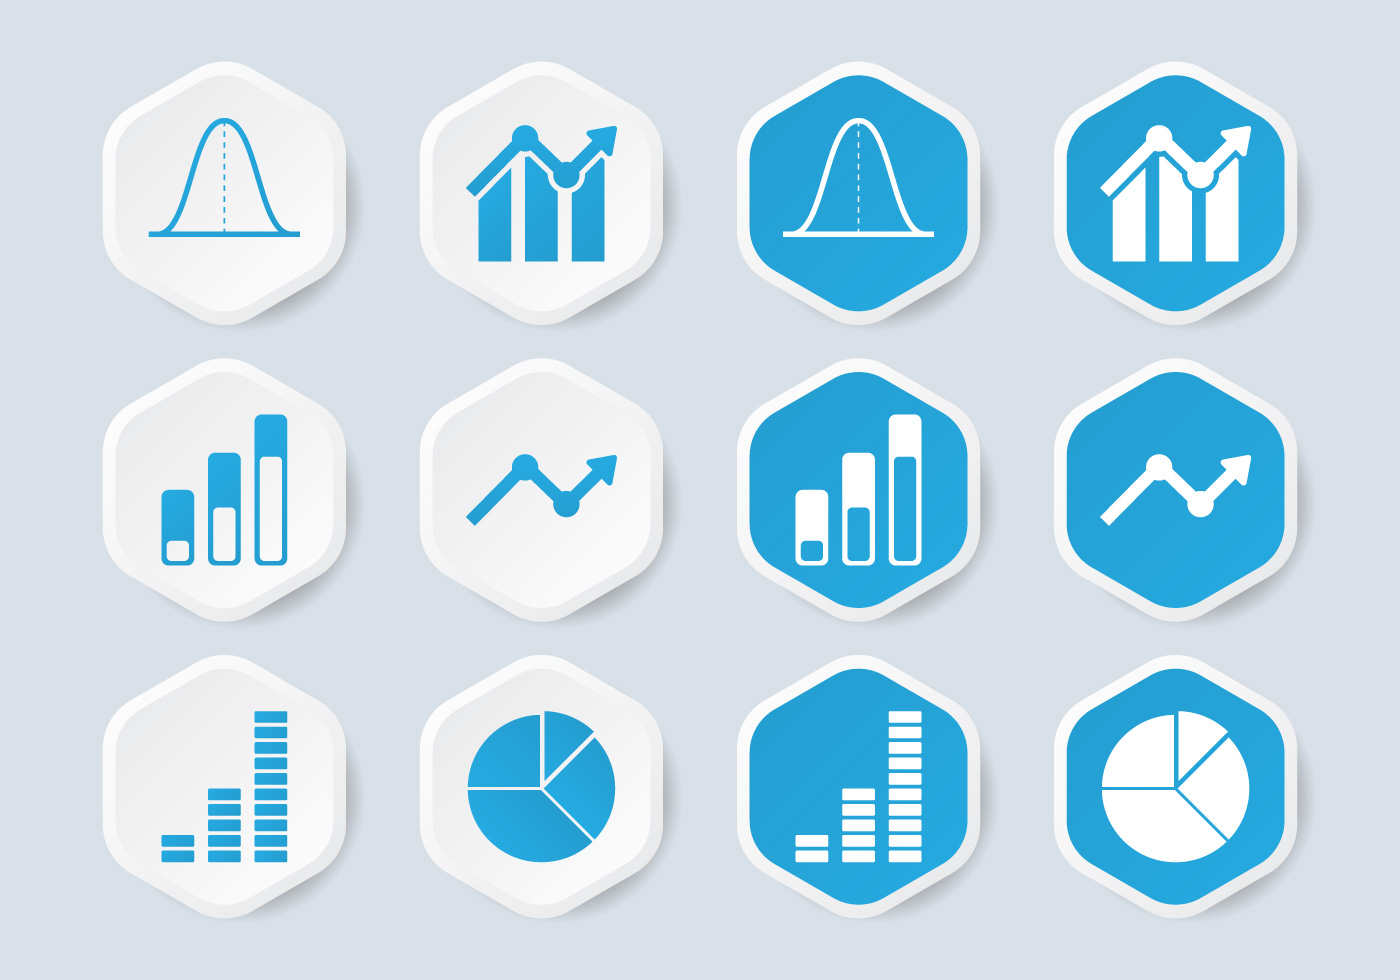 statistical analysis graphs and diagrams diy guitar wiring bell curve infographic icon - download free vector art, stock graphics & images